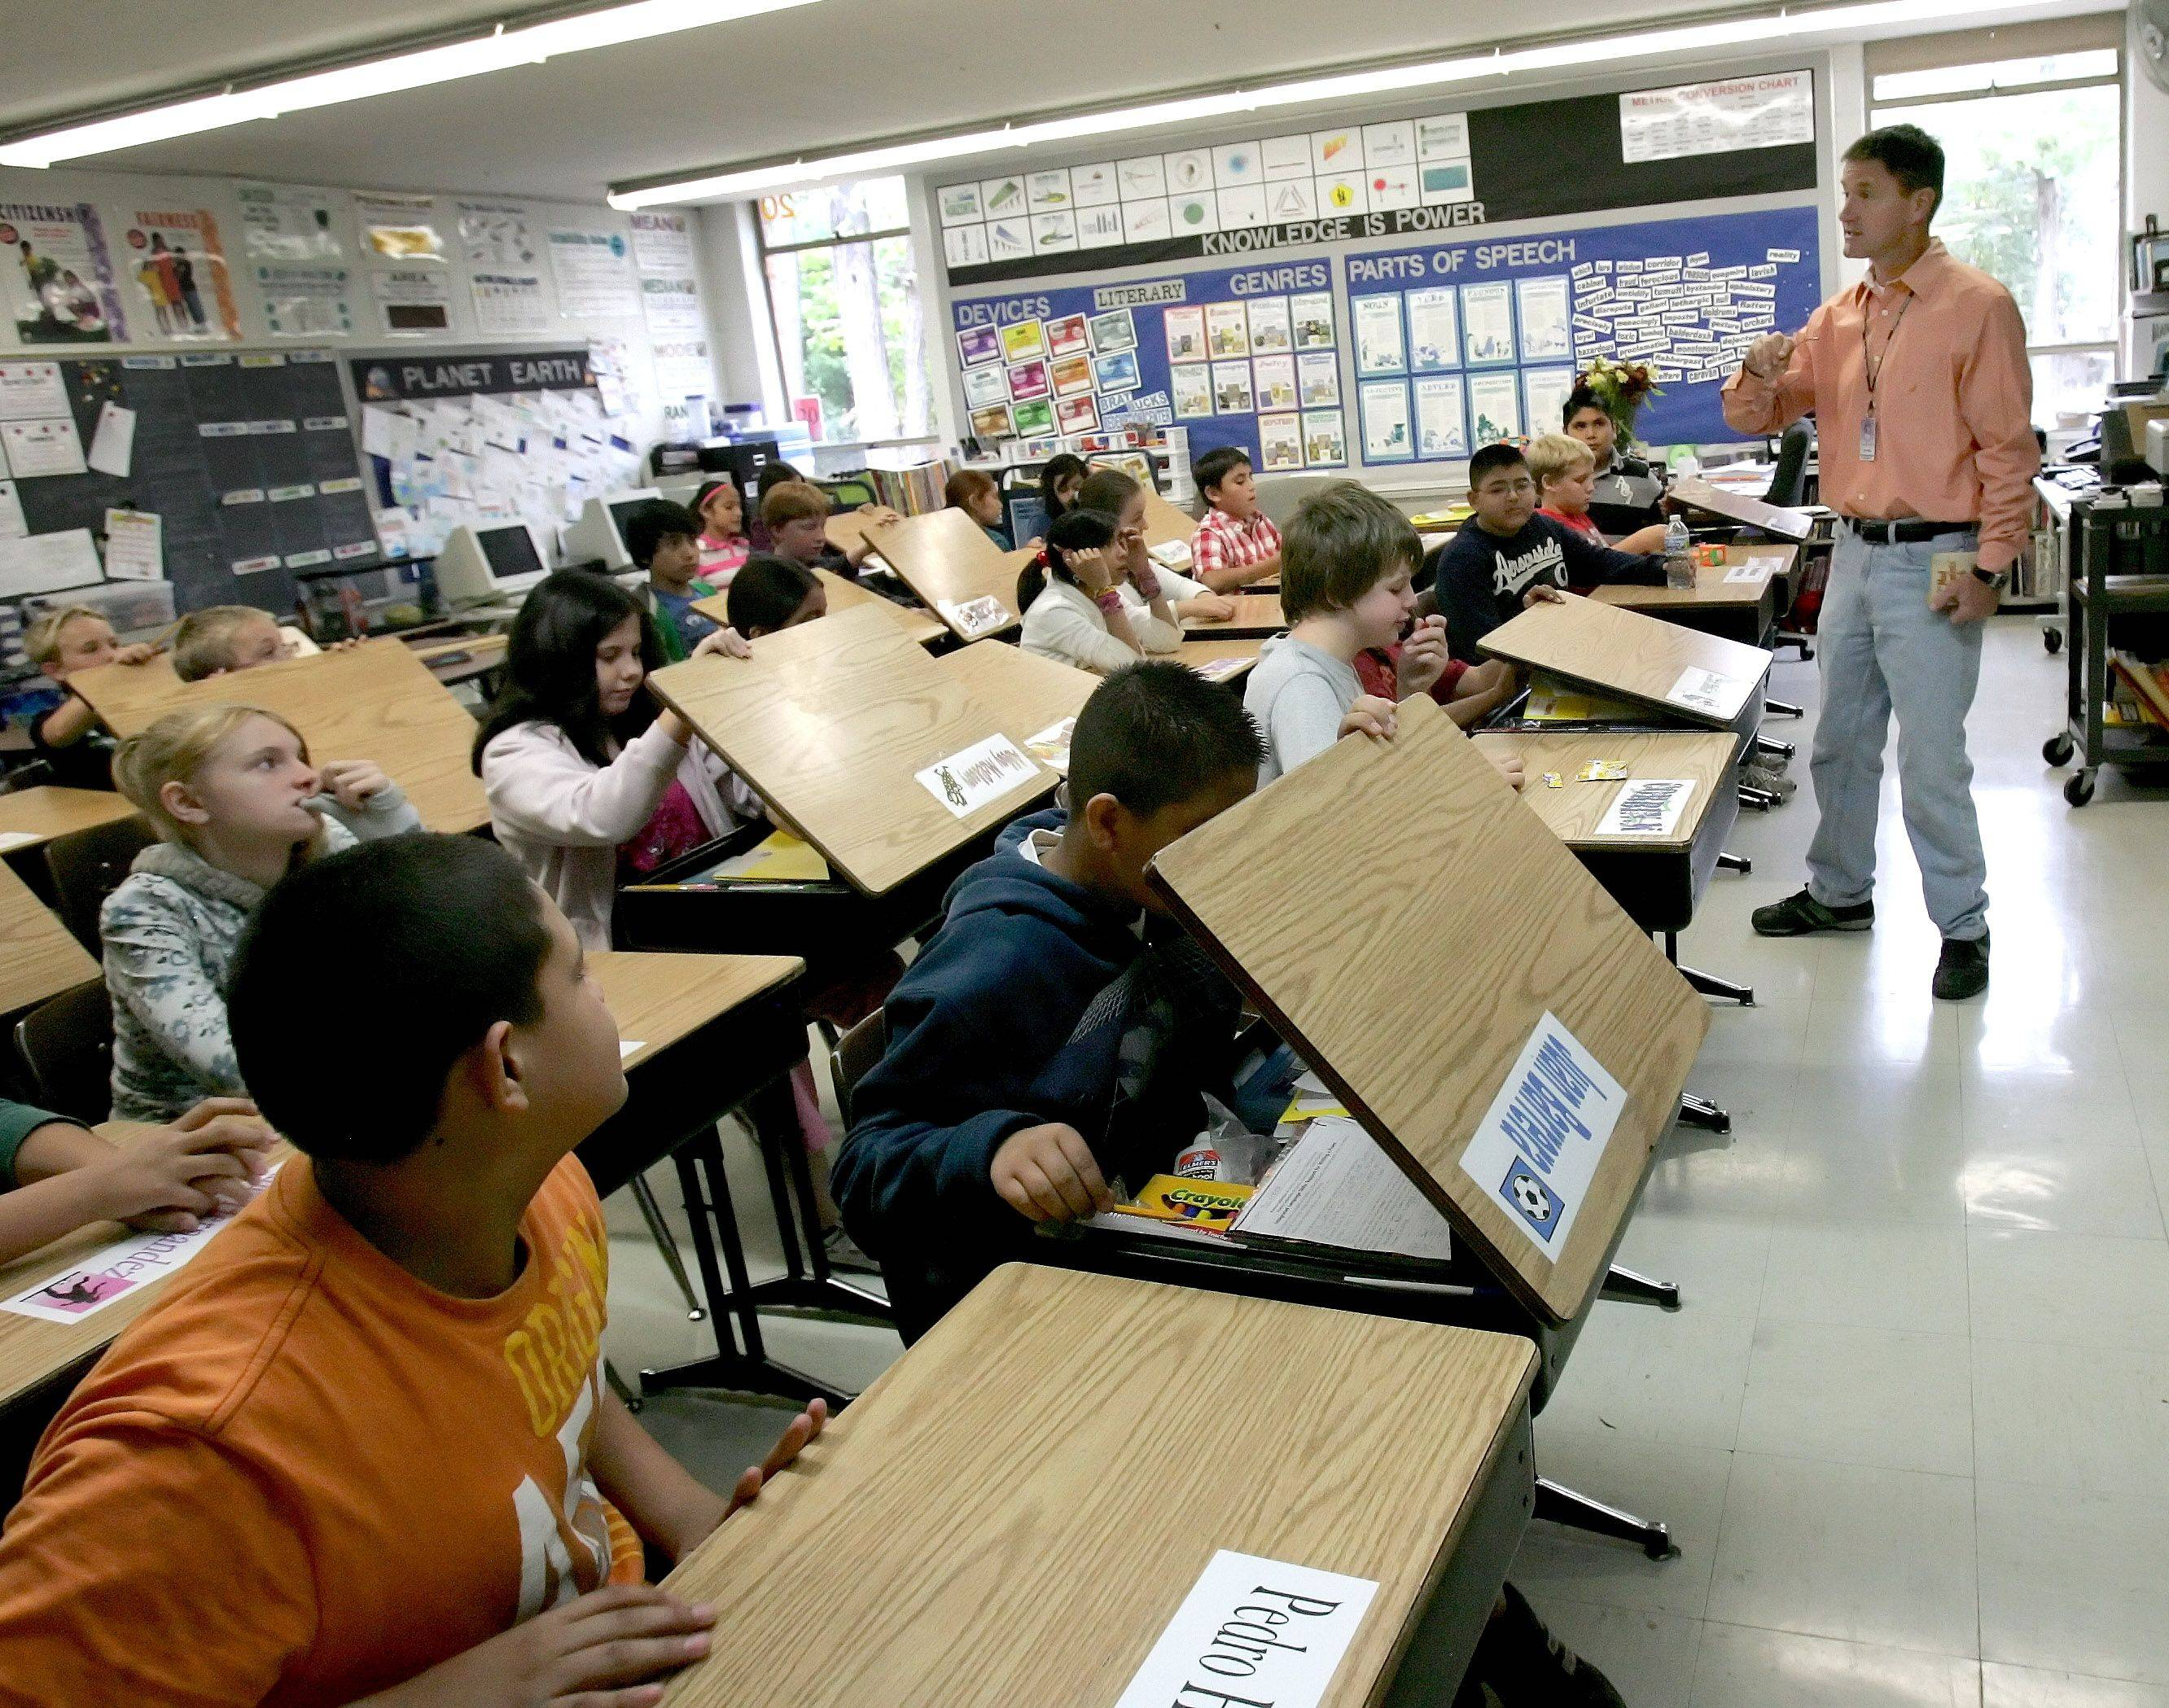 Sixth-grade teacher Steve Brugmann has 28 students in his class at Turner Elementary School in West Chicago.